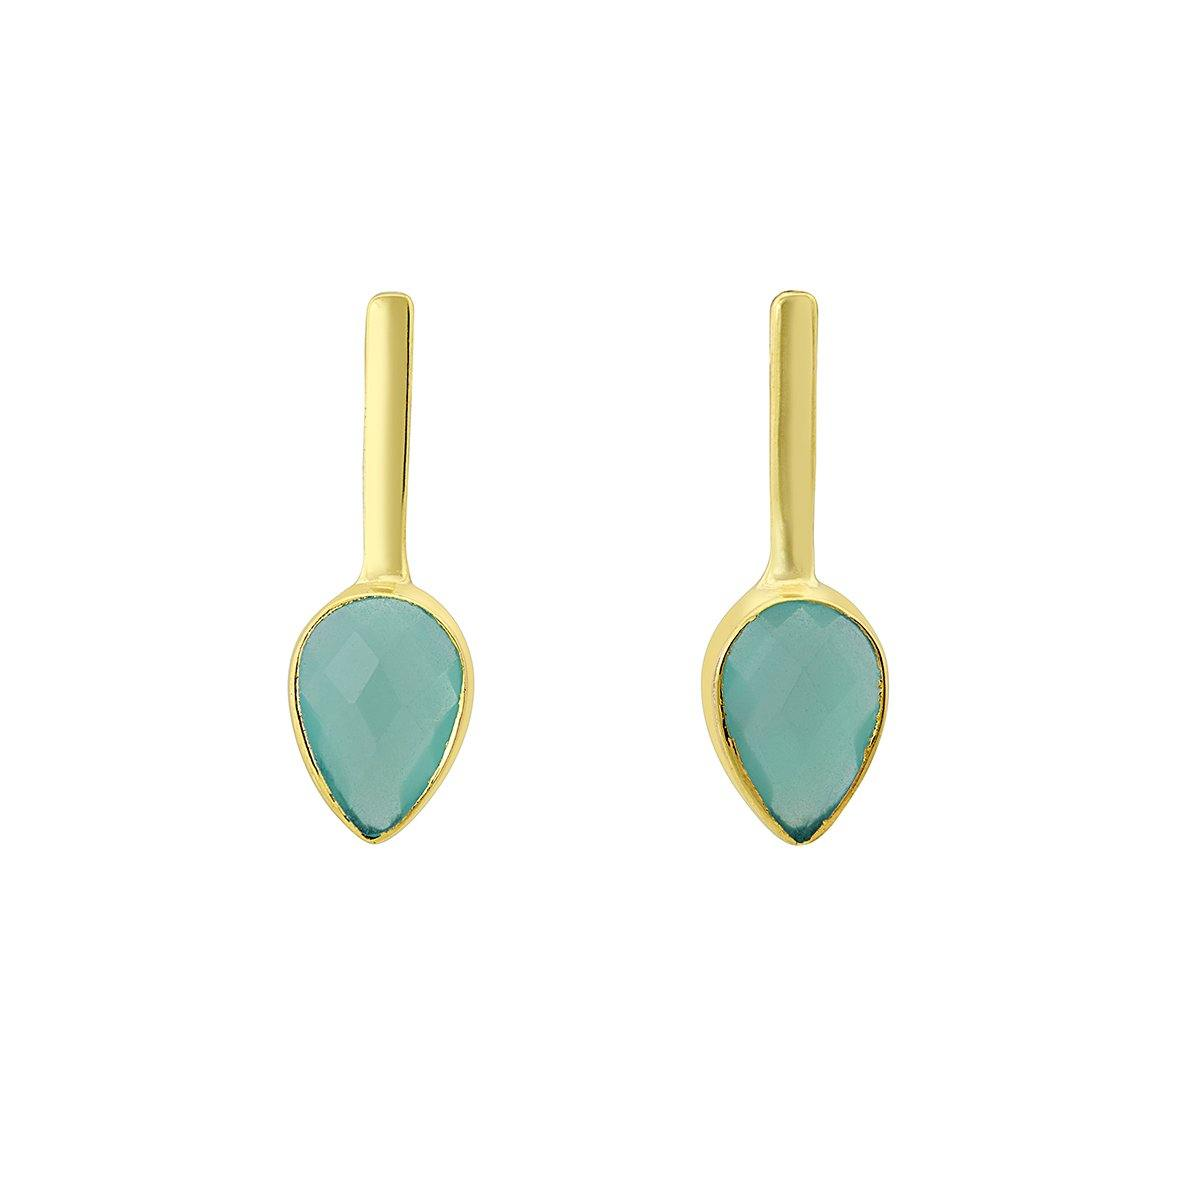 Bluey green agate and gold earrings - The Collective Dublin